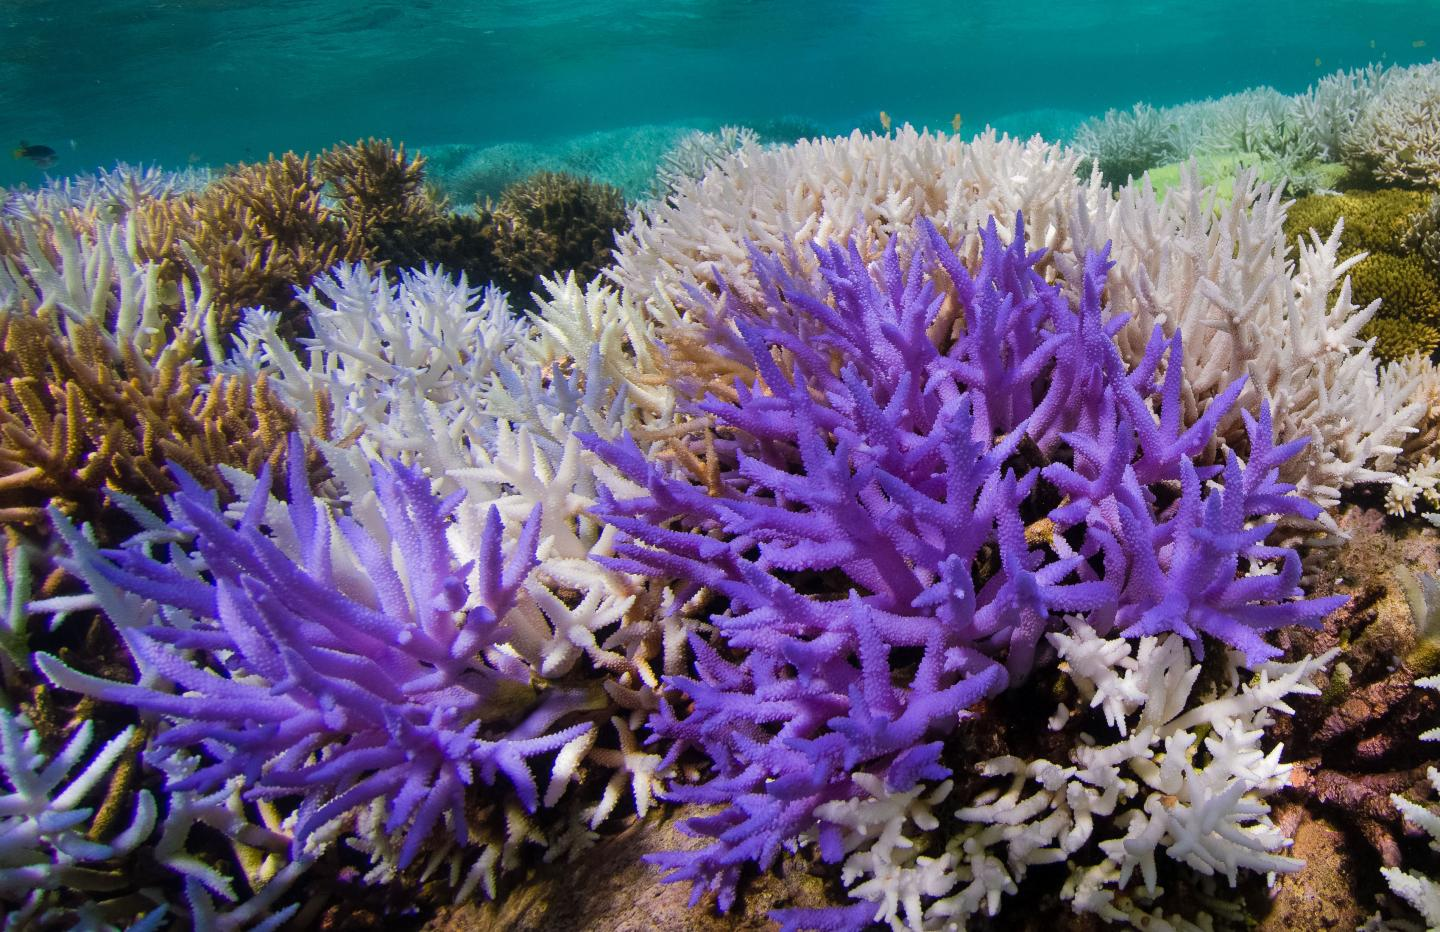 Acropora Corals with Colourful Bleaching